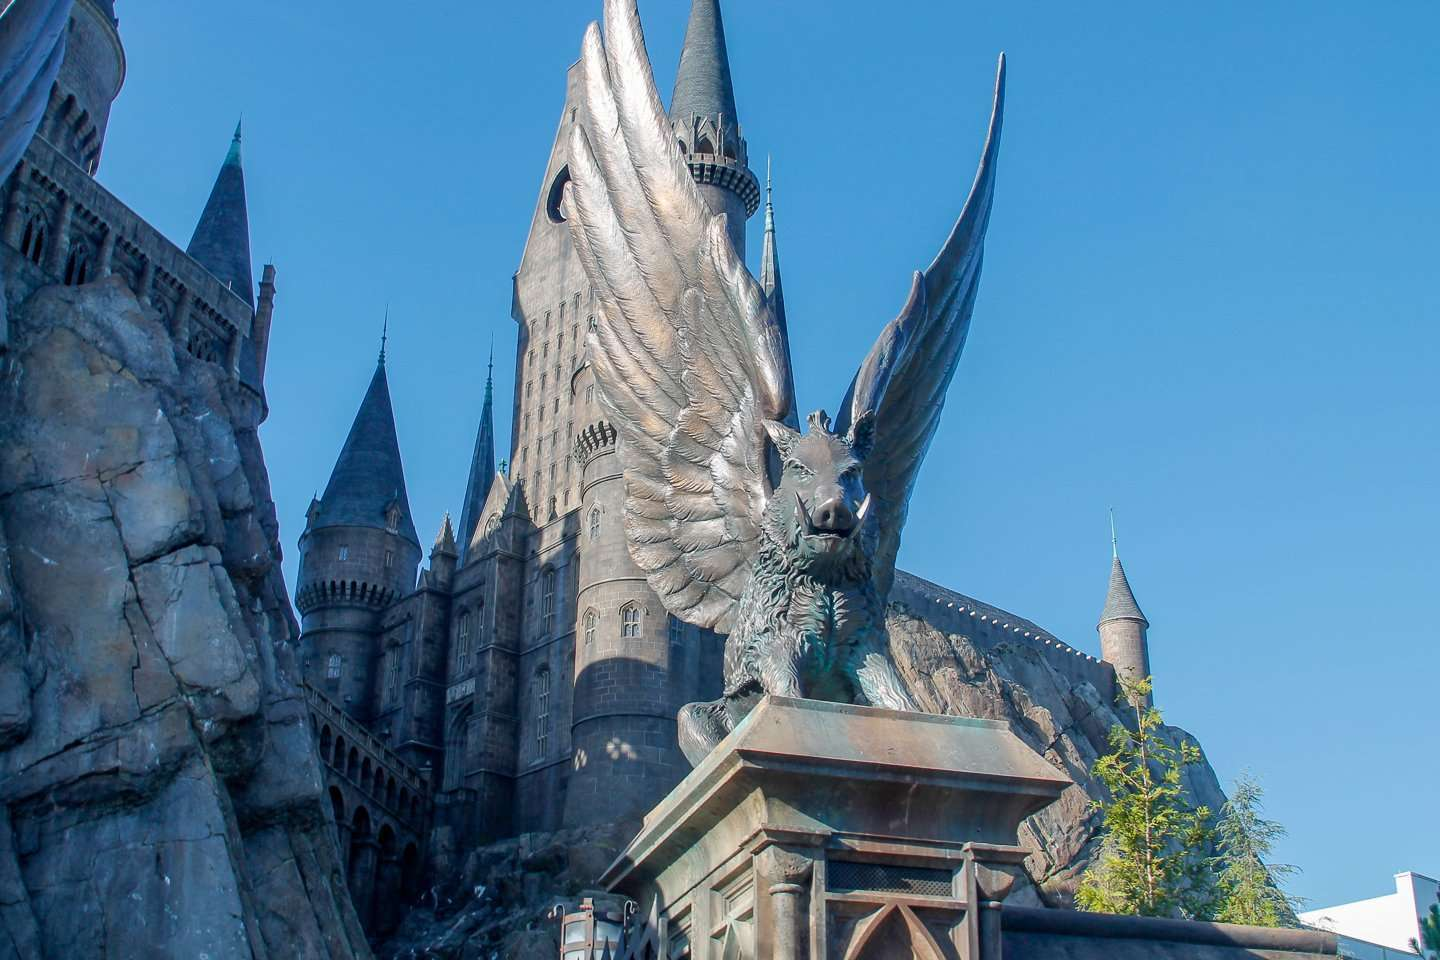 Forbidden Journey Wizarding World of Harry Potter